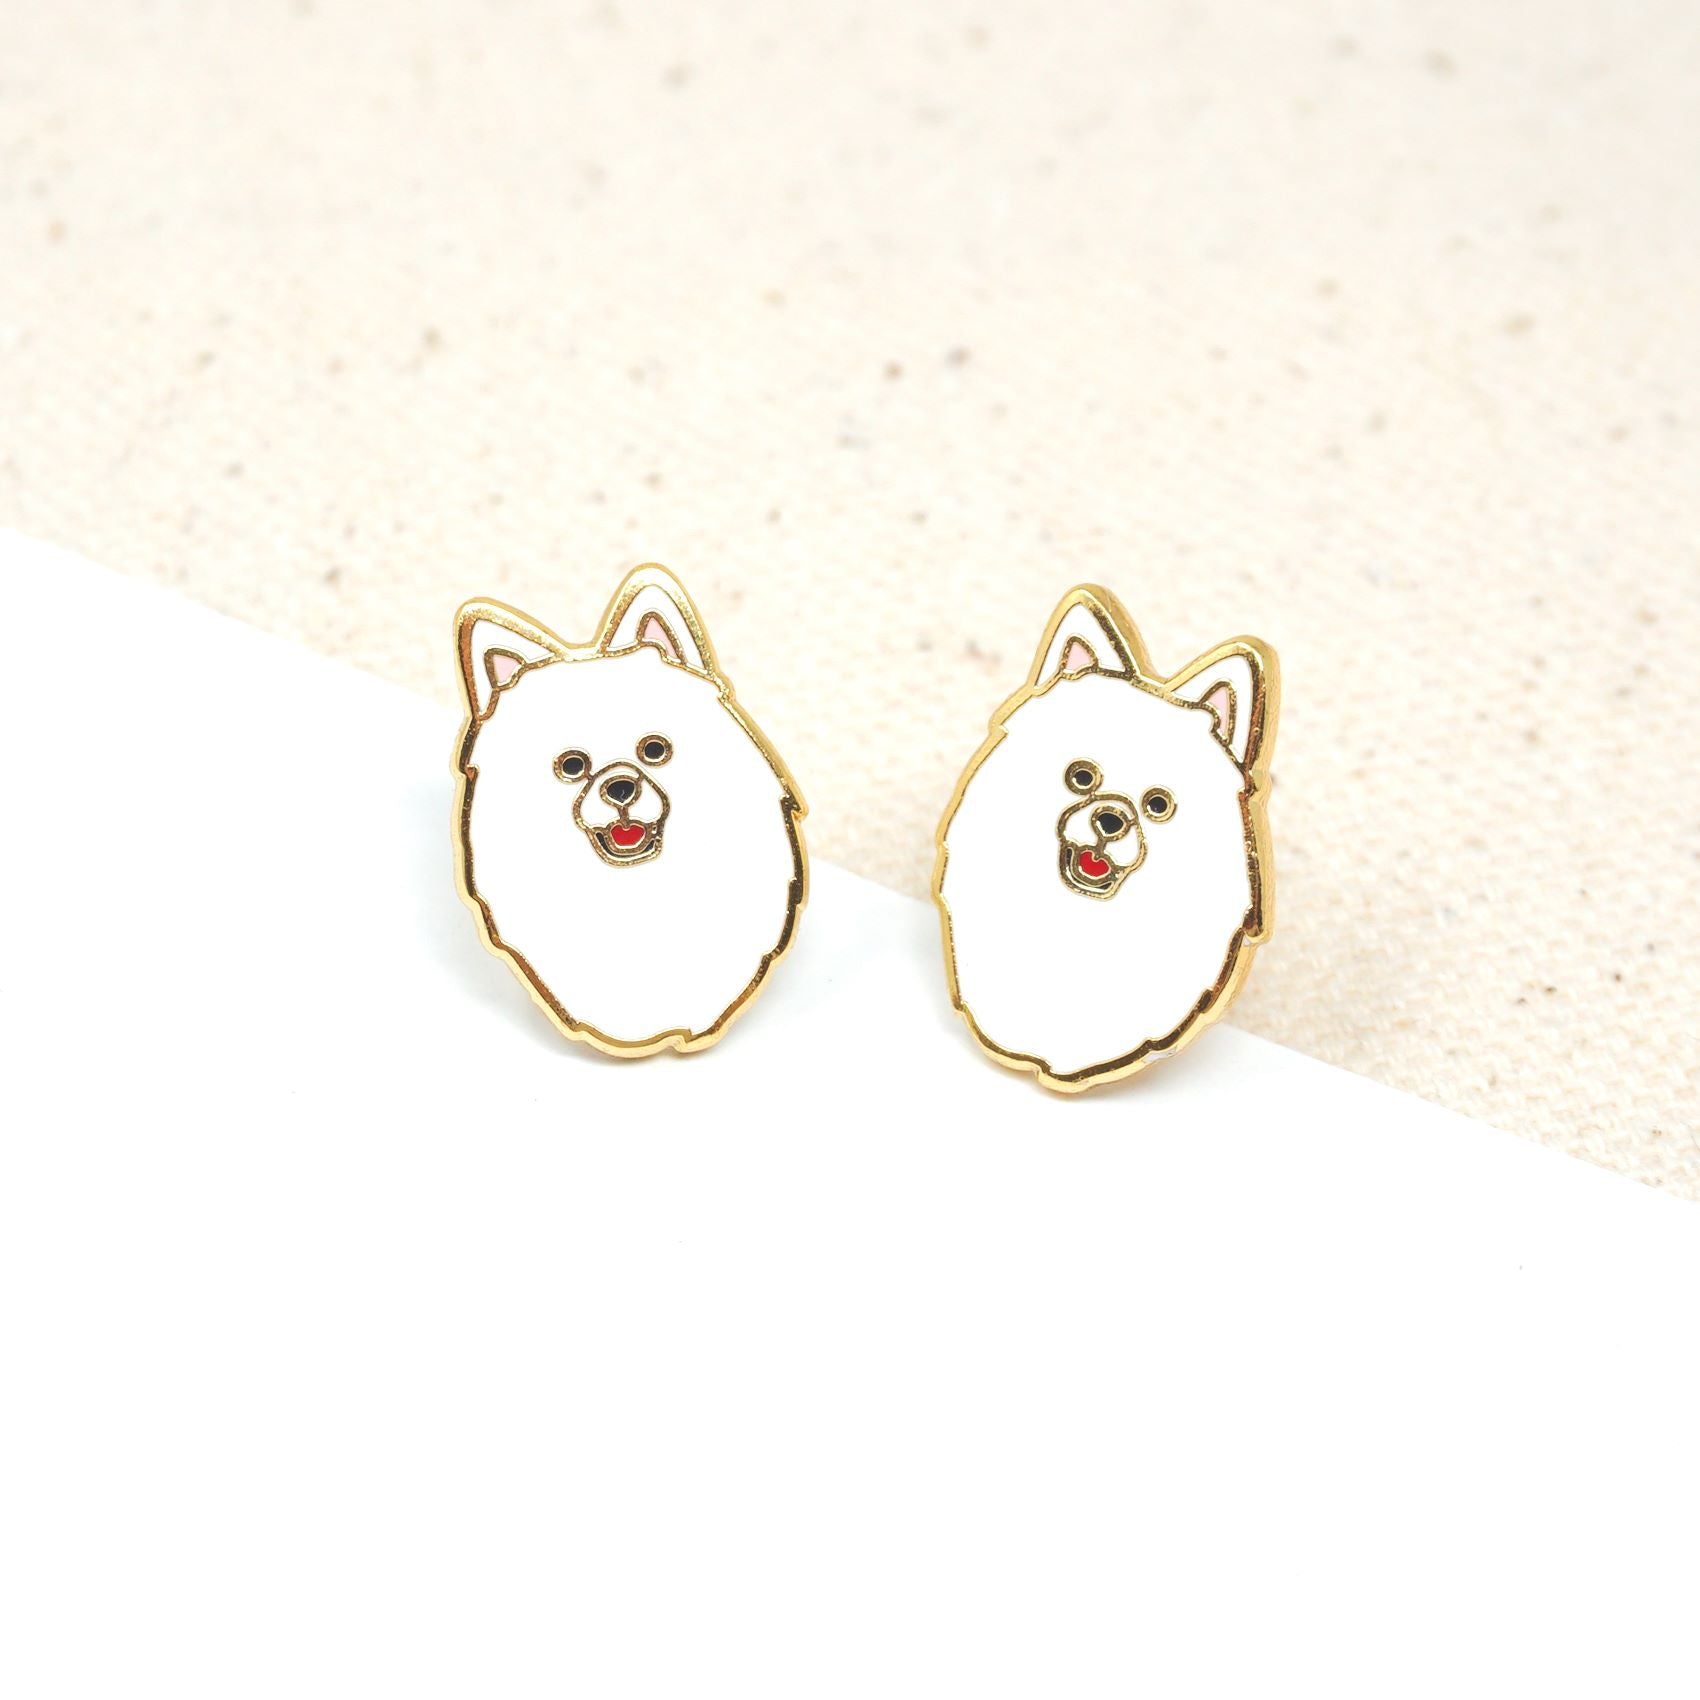 Handcrafted Samoyed Enamel Stud Earrings | Miss Modi